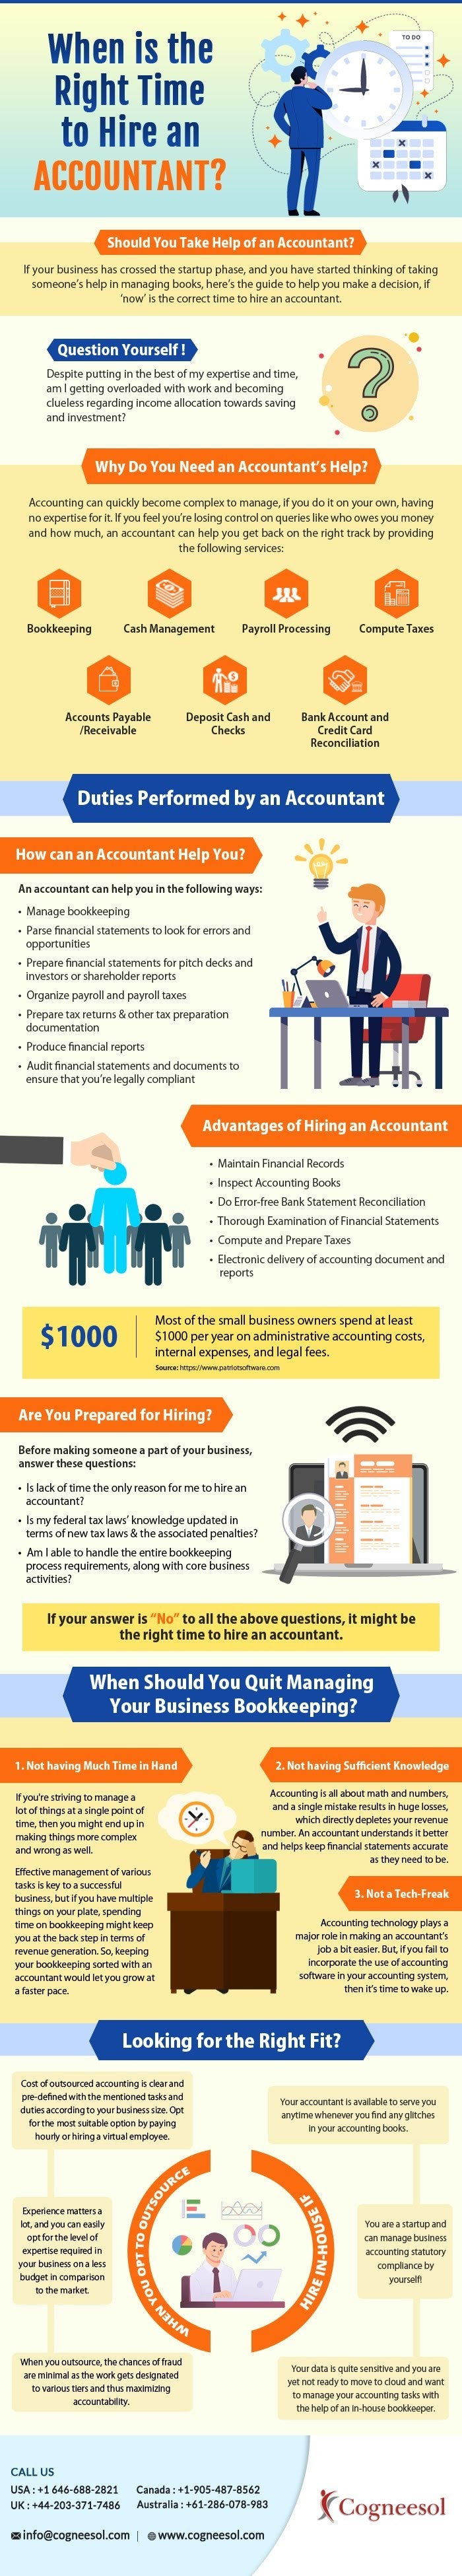 When is the Right Time to Hire an Accountant? #infographic